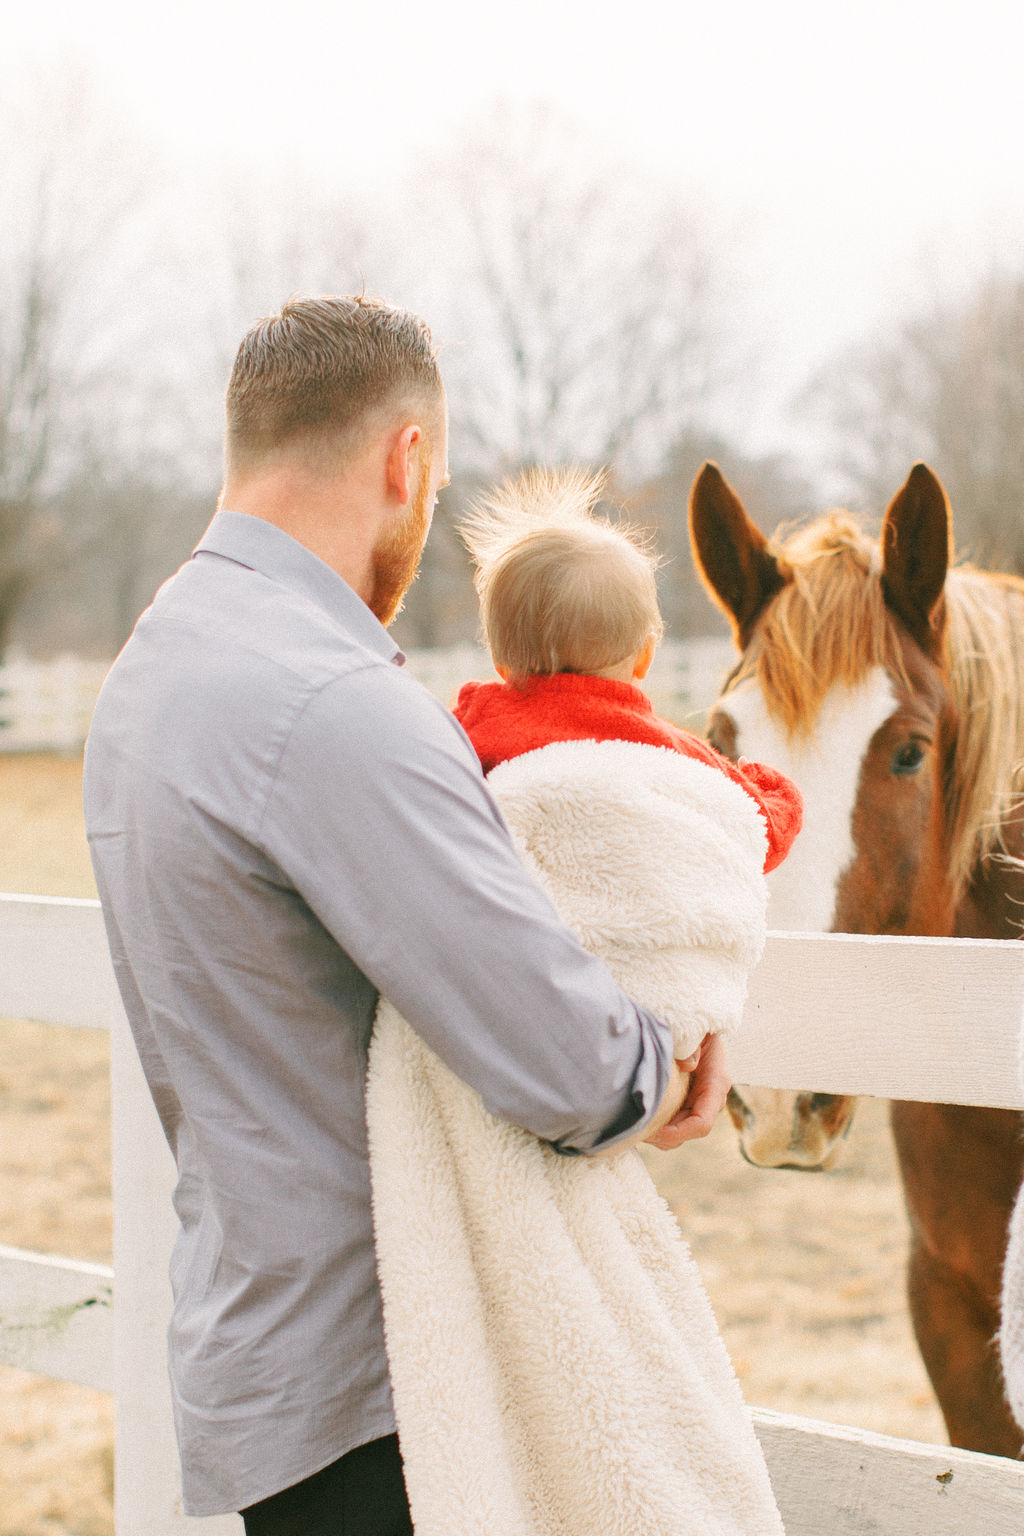 Baby and horse